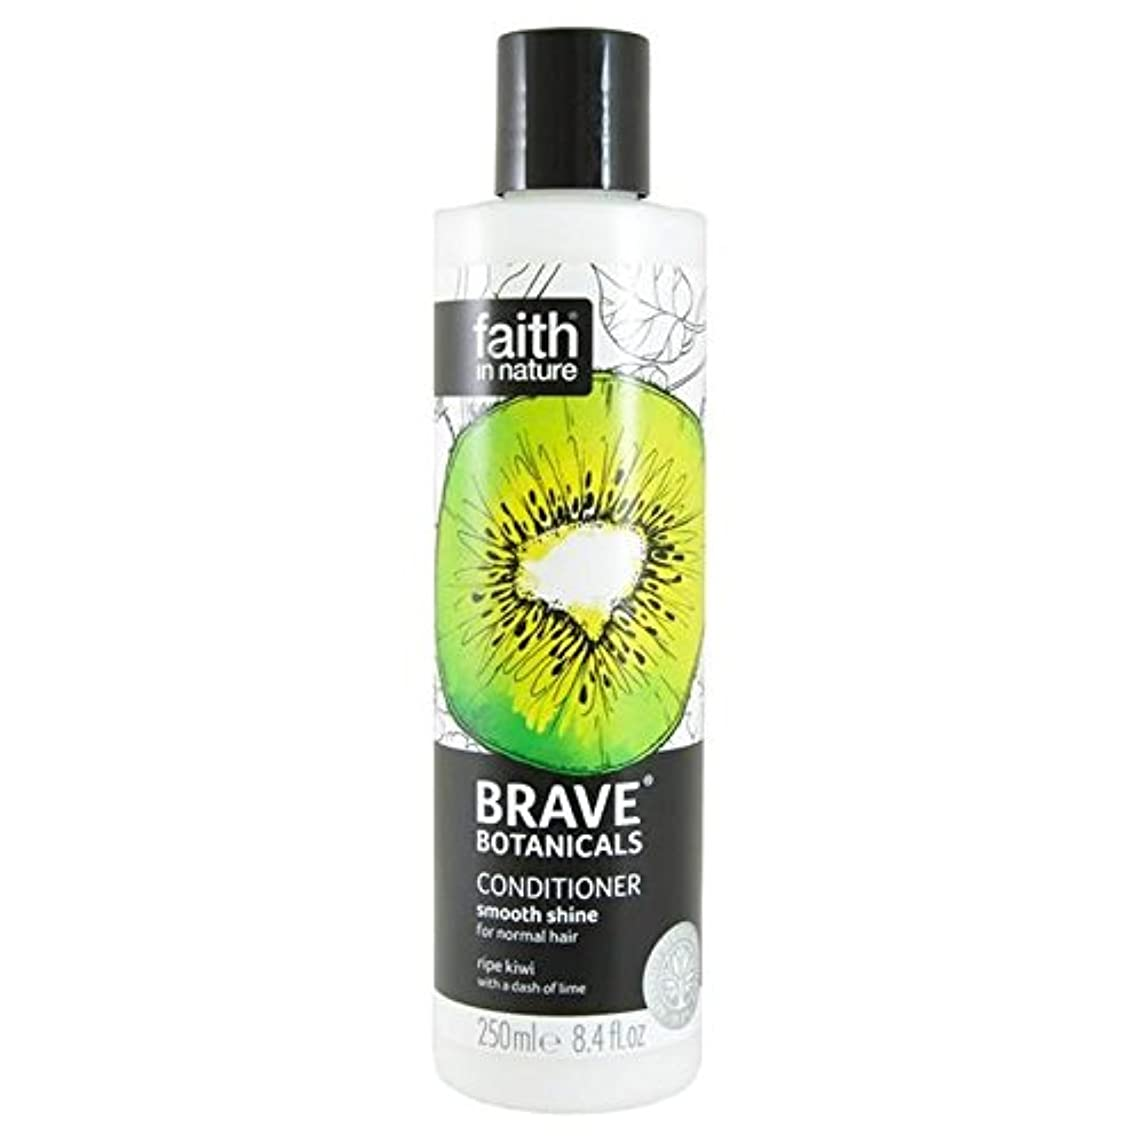 排泄する口径輝くBrave Botanicals Kiwi & Lime Smooth Shine Conditioner 250ml (Pack of 6) - (Faith In Nature) 勇敢な植物キウイ&ライムなめらかな輝...